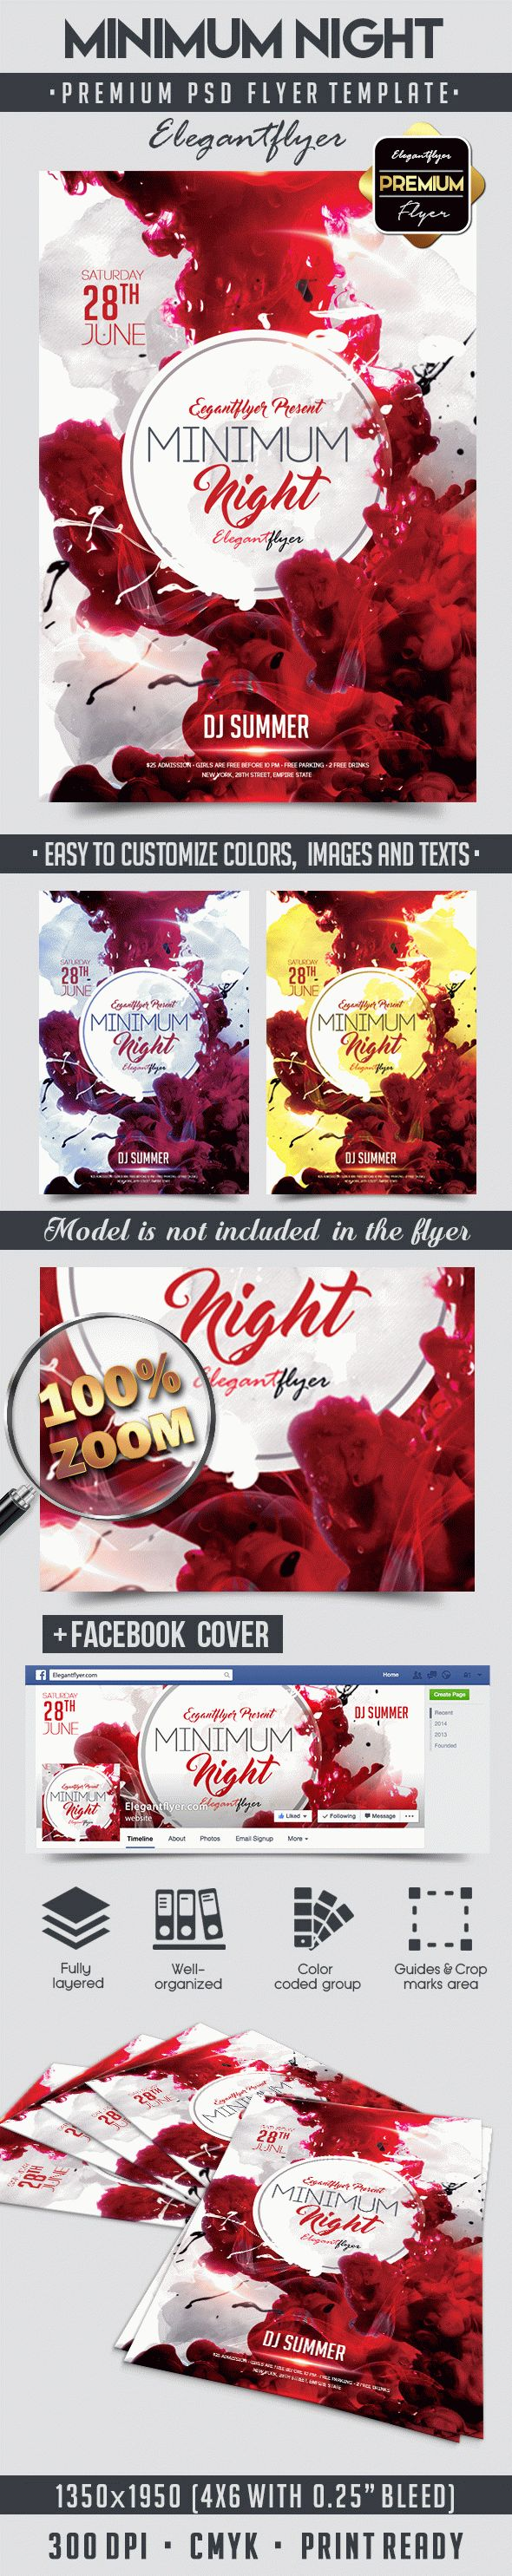 Minimum Night – Flyer PSD Template + Facebook Cover